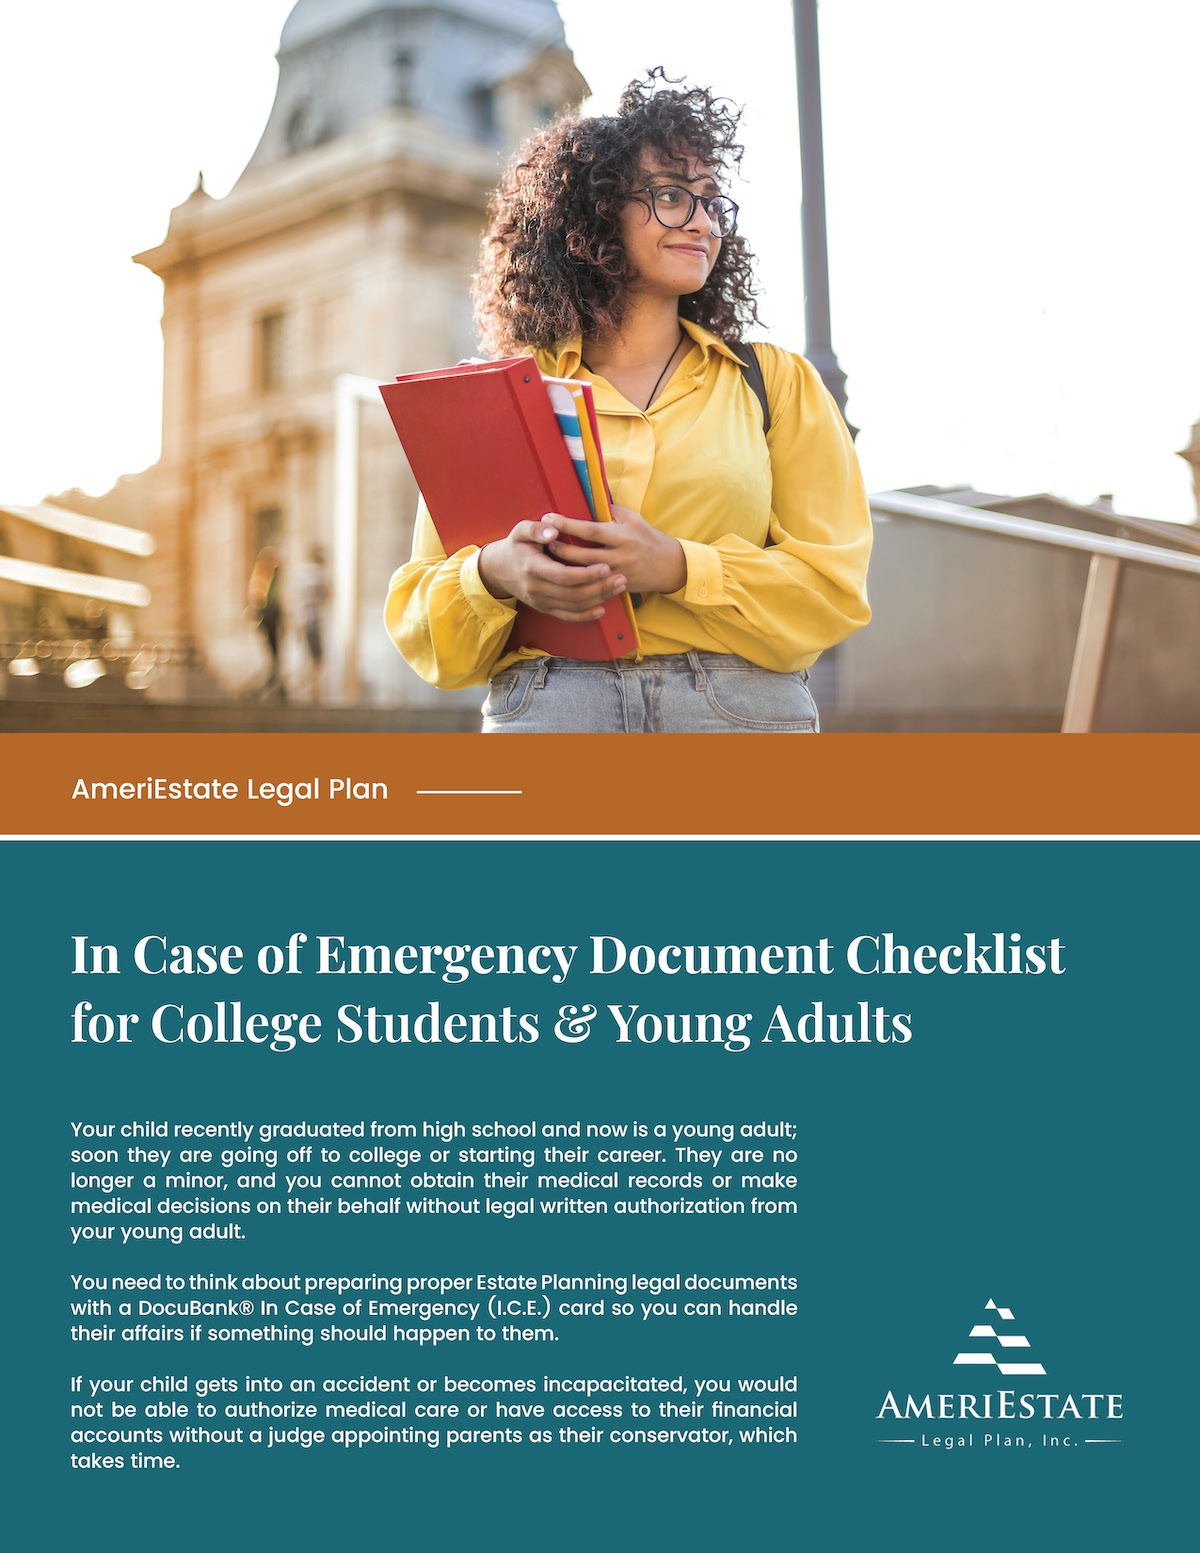 FREE In Case of Emergency Document Checklist for College Students and Young Adults   AmeriEstate Legal Plan